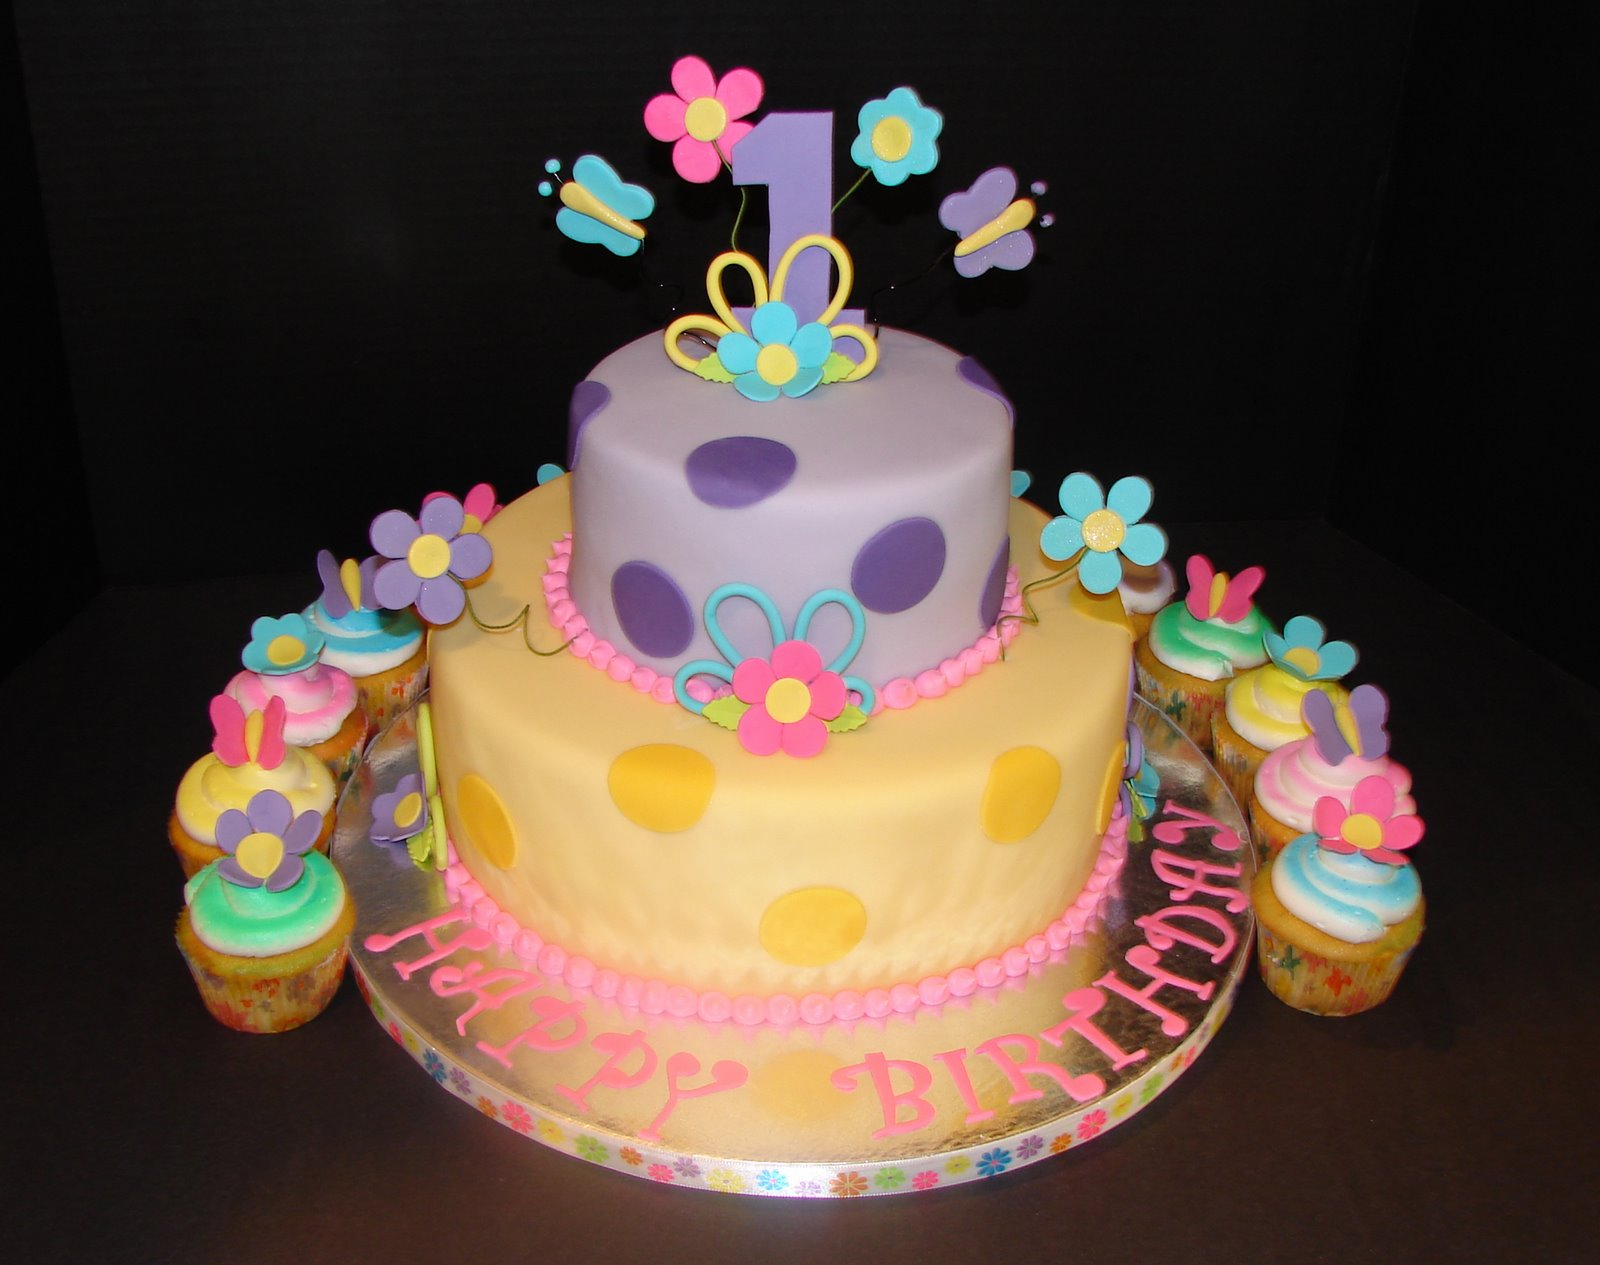 1st Birthday Cake Decoration Of Birthday Cake Images For Girls Clip Art Pictures Pics With